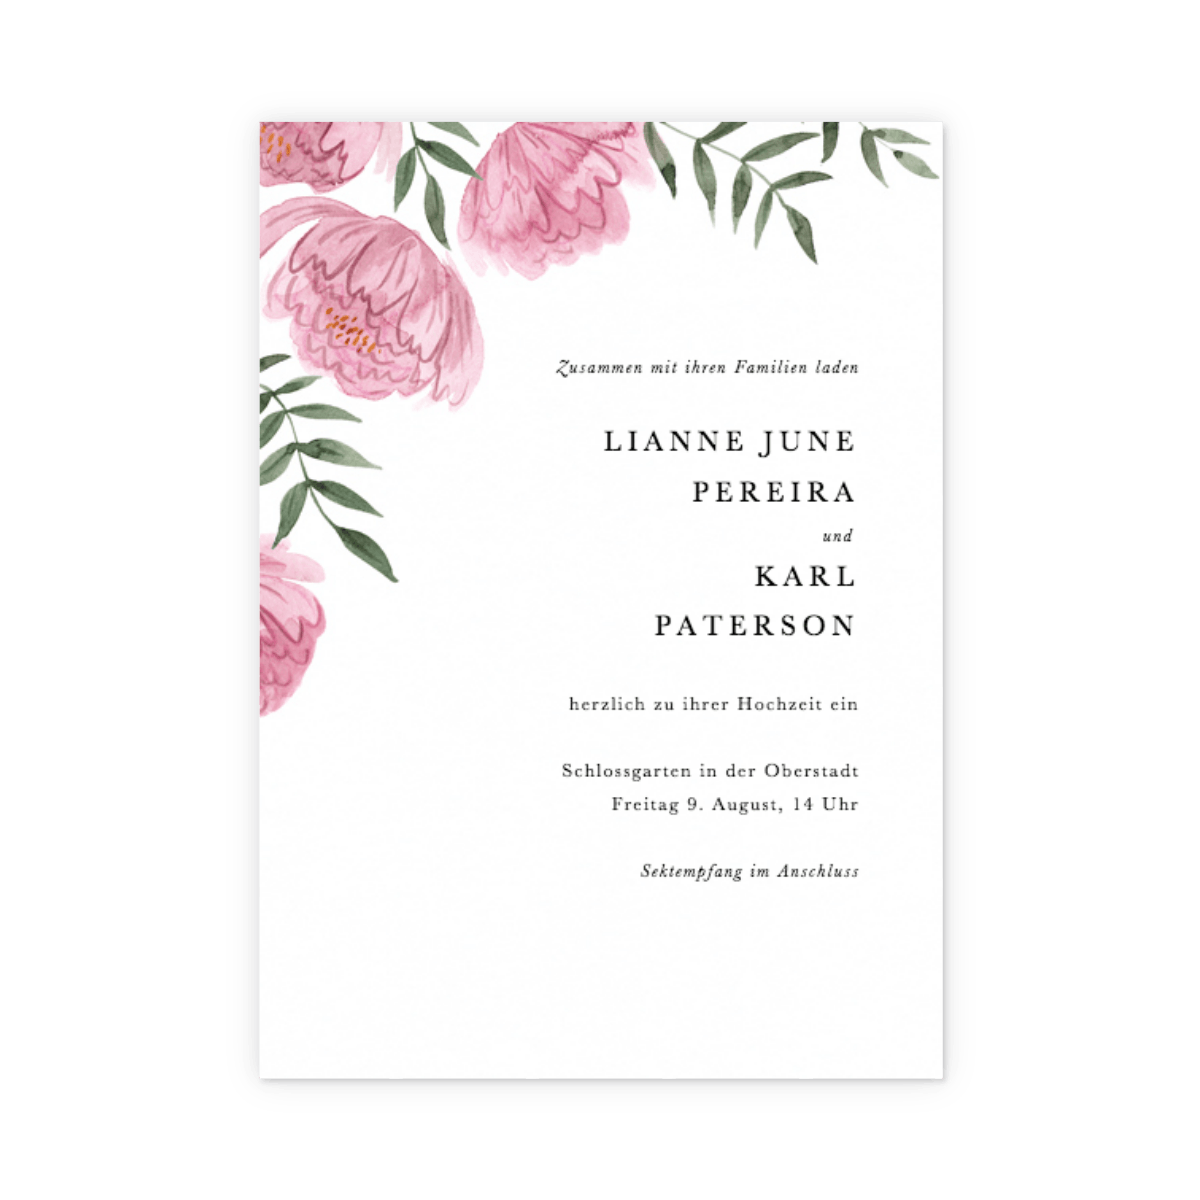 Https%3a%2f%2fwww.papier.com%2fproduct image%2f65535%2f4%2fdusky peonies 14861 vorderseite 1553686060.png?ixlib=rb 1.1